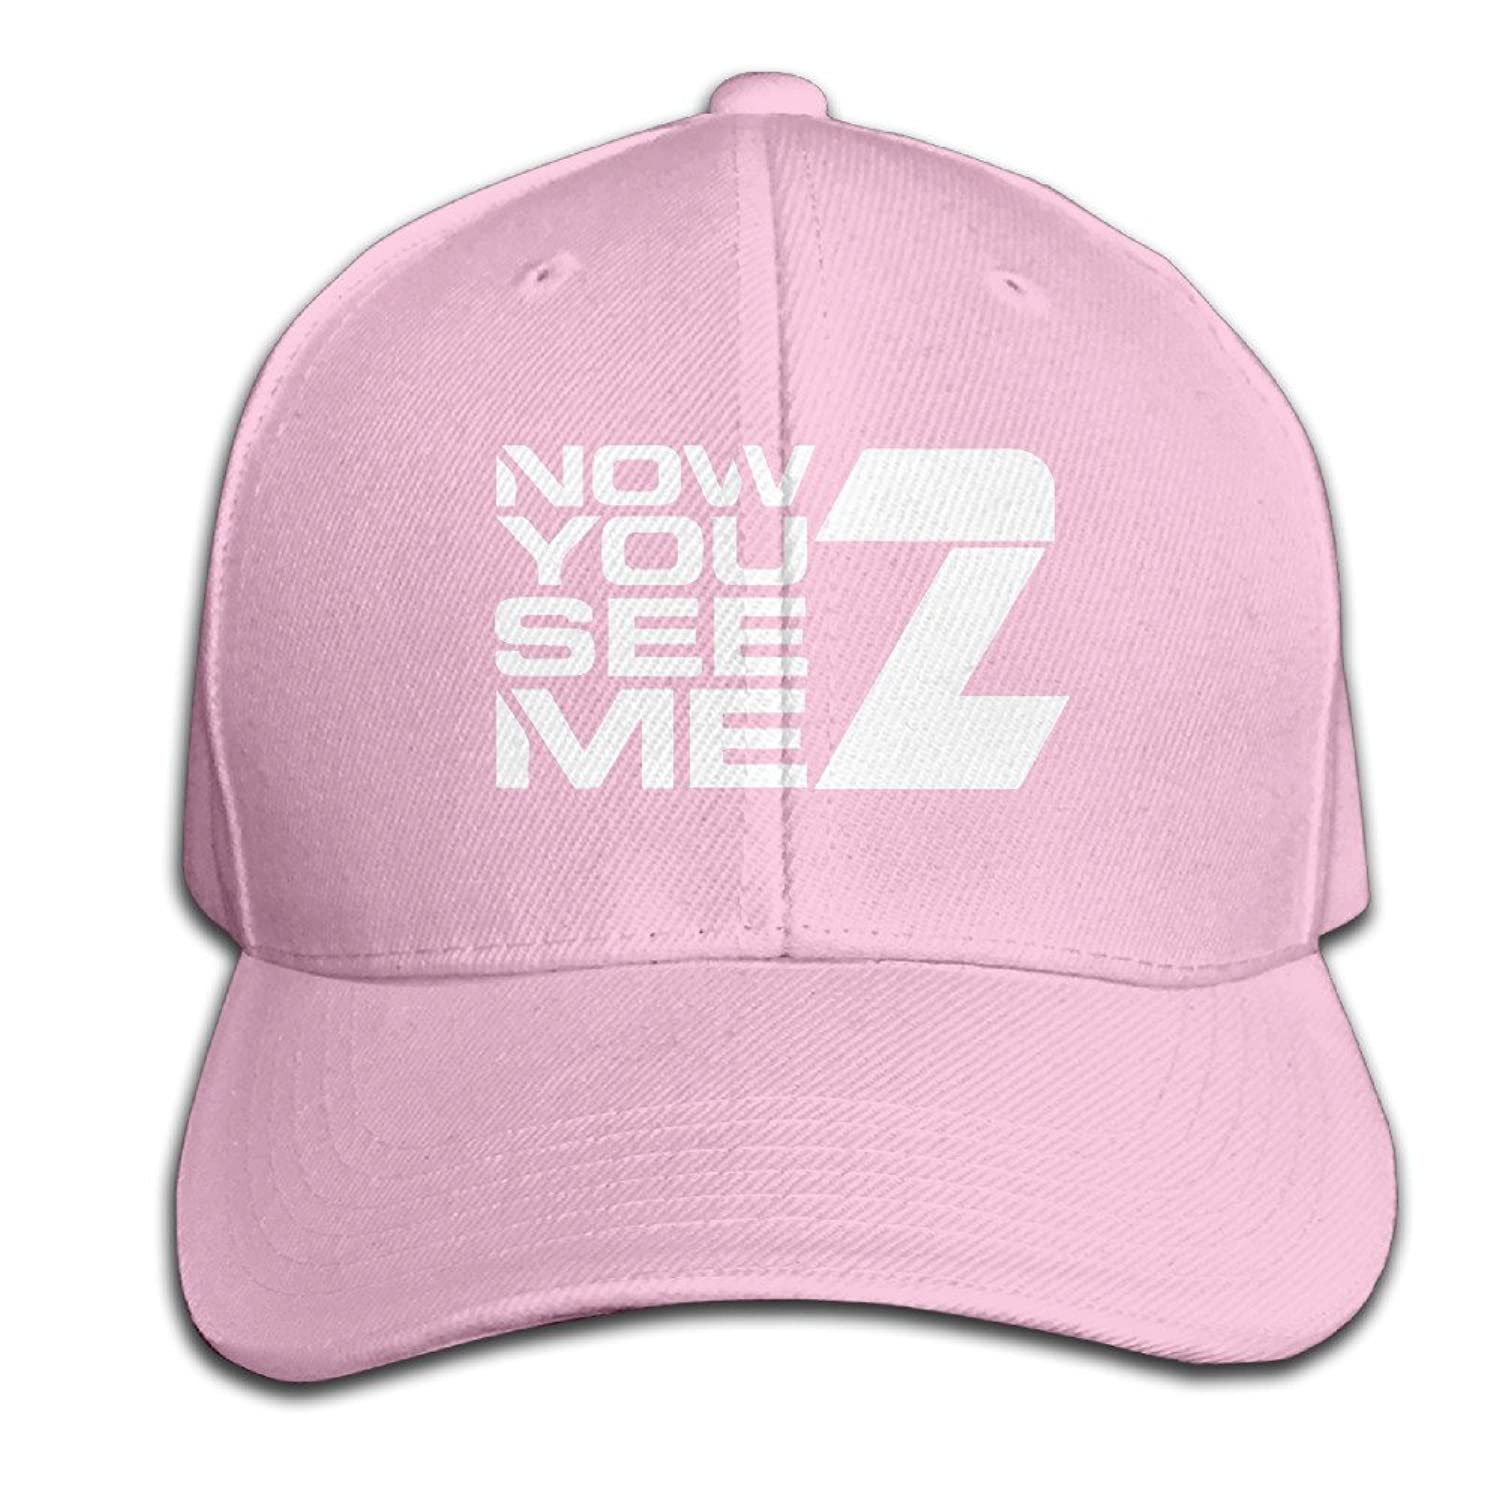 ALIZISHOP Unisex Now You See Me 2 Poster Peaked Baseball Caps Hats